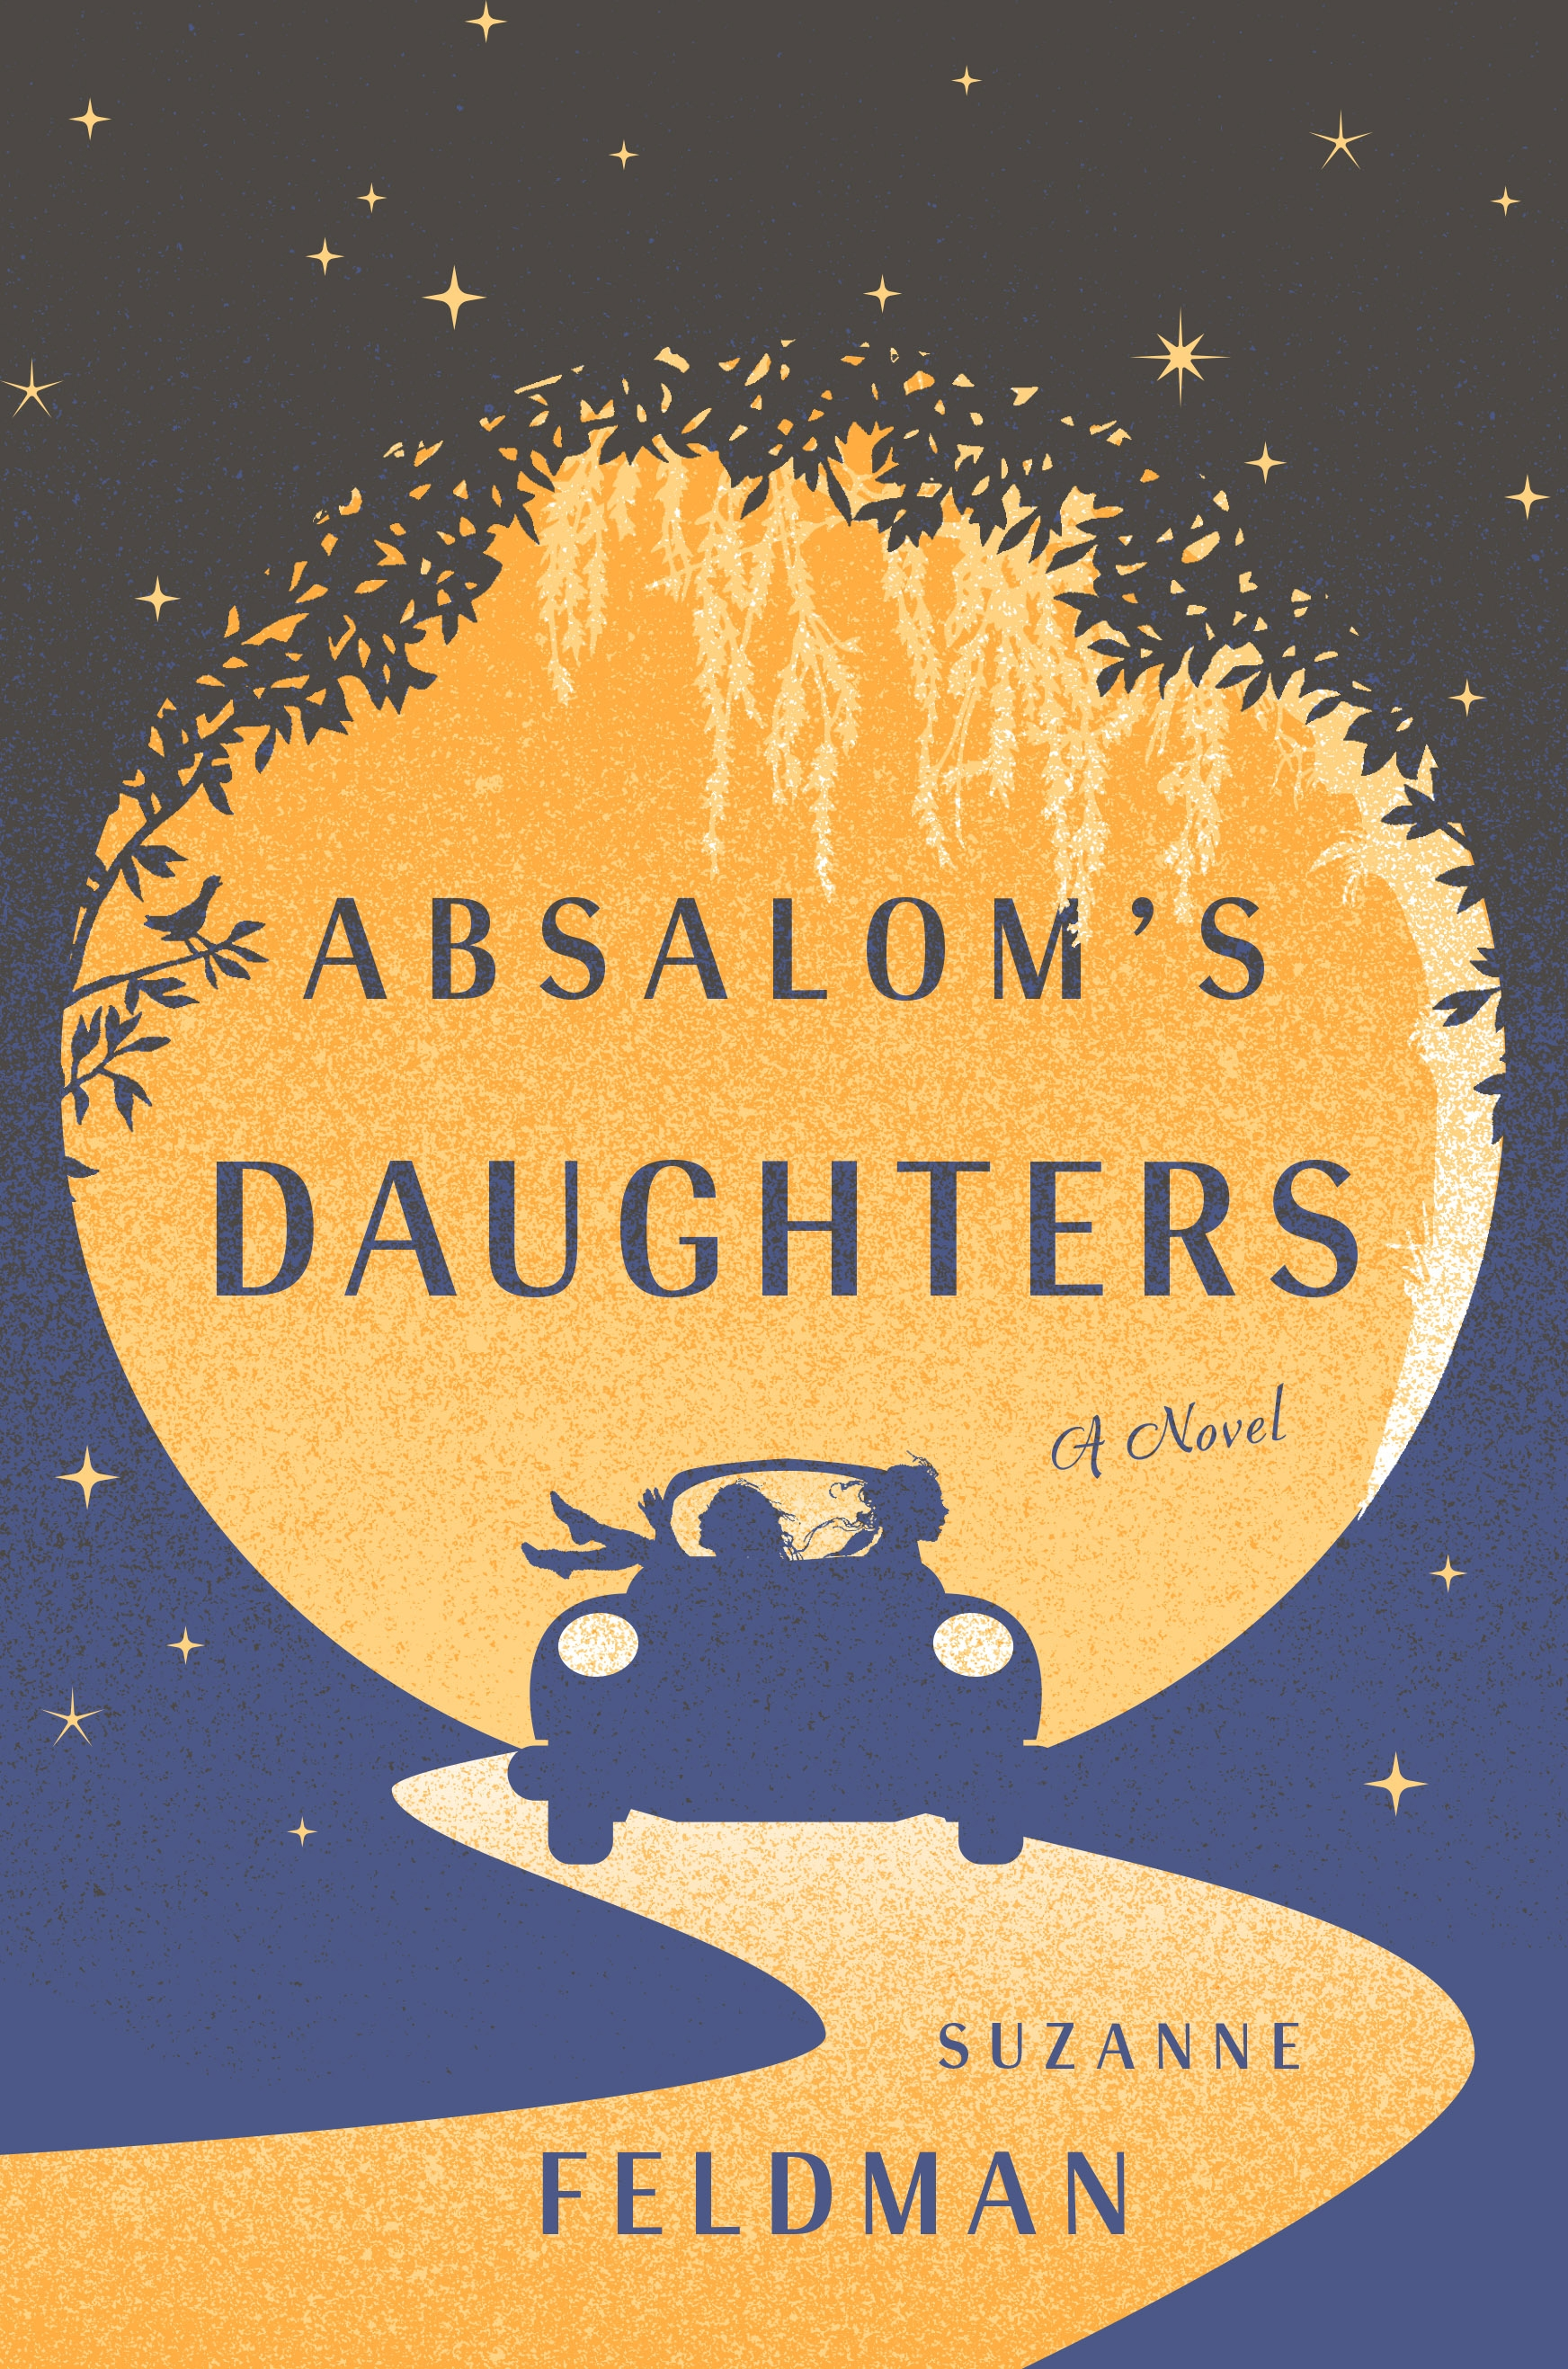 Absalom's Daughters A Novel